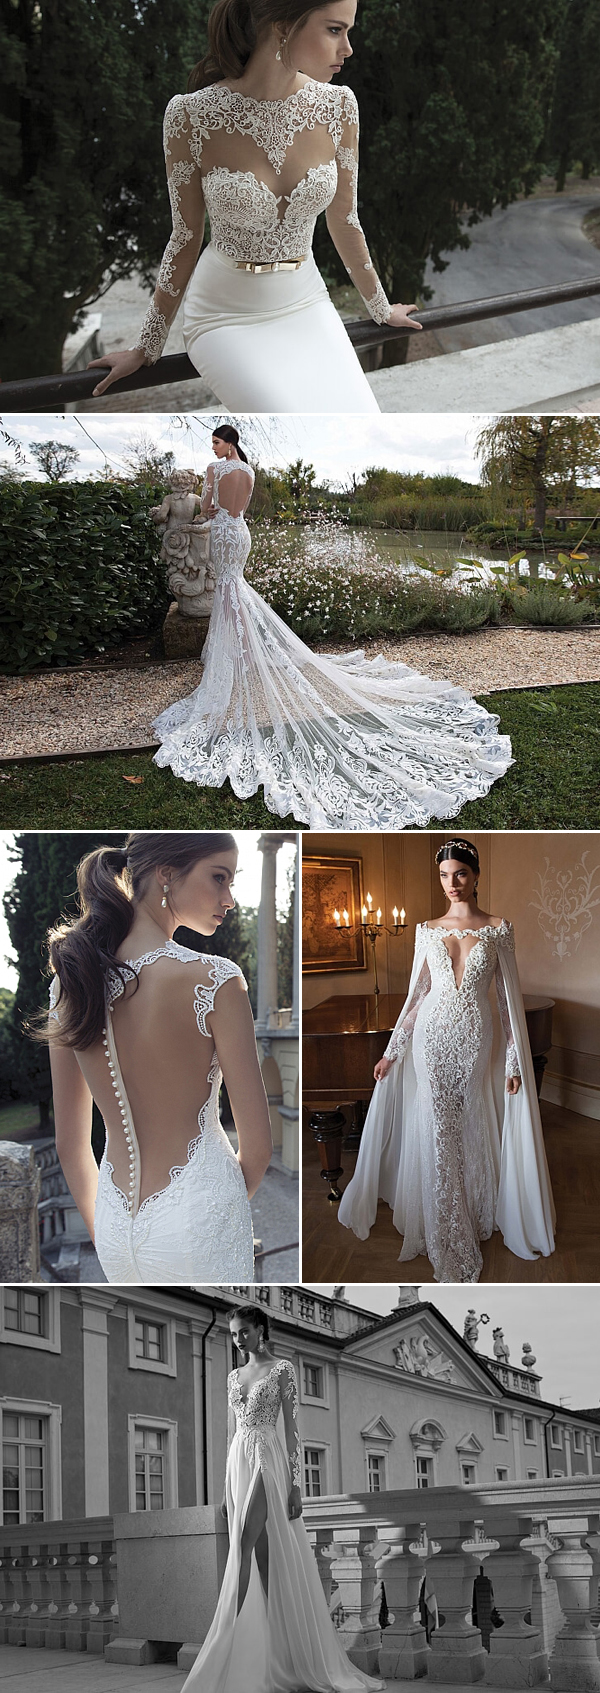 Sexiest Collection Ever Top 10 Israeli Wedding Dress